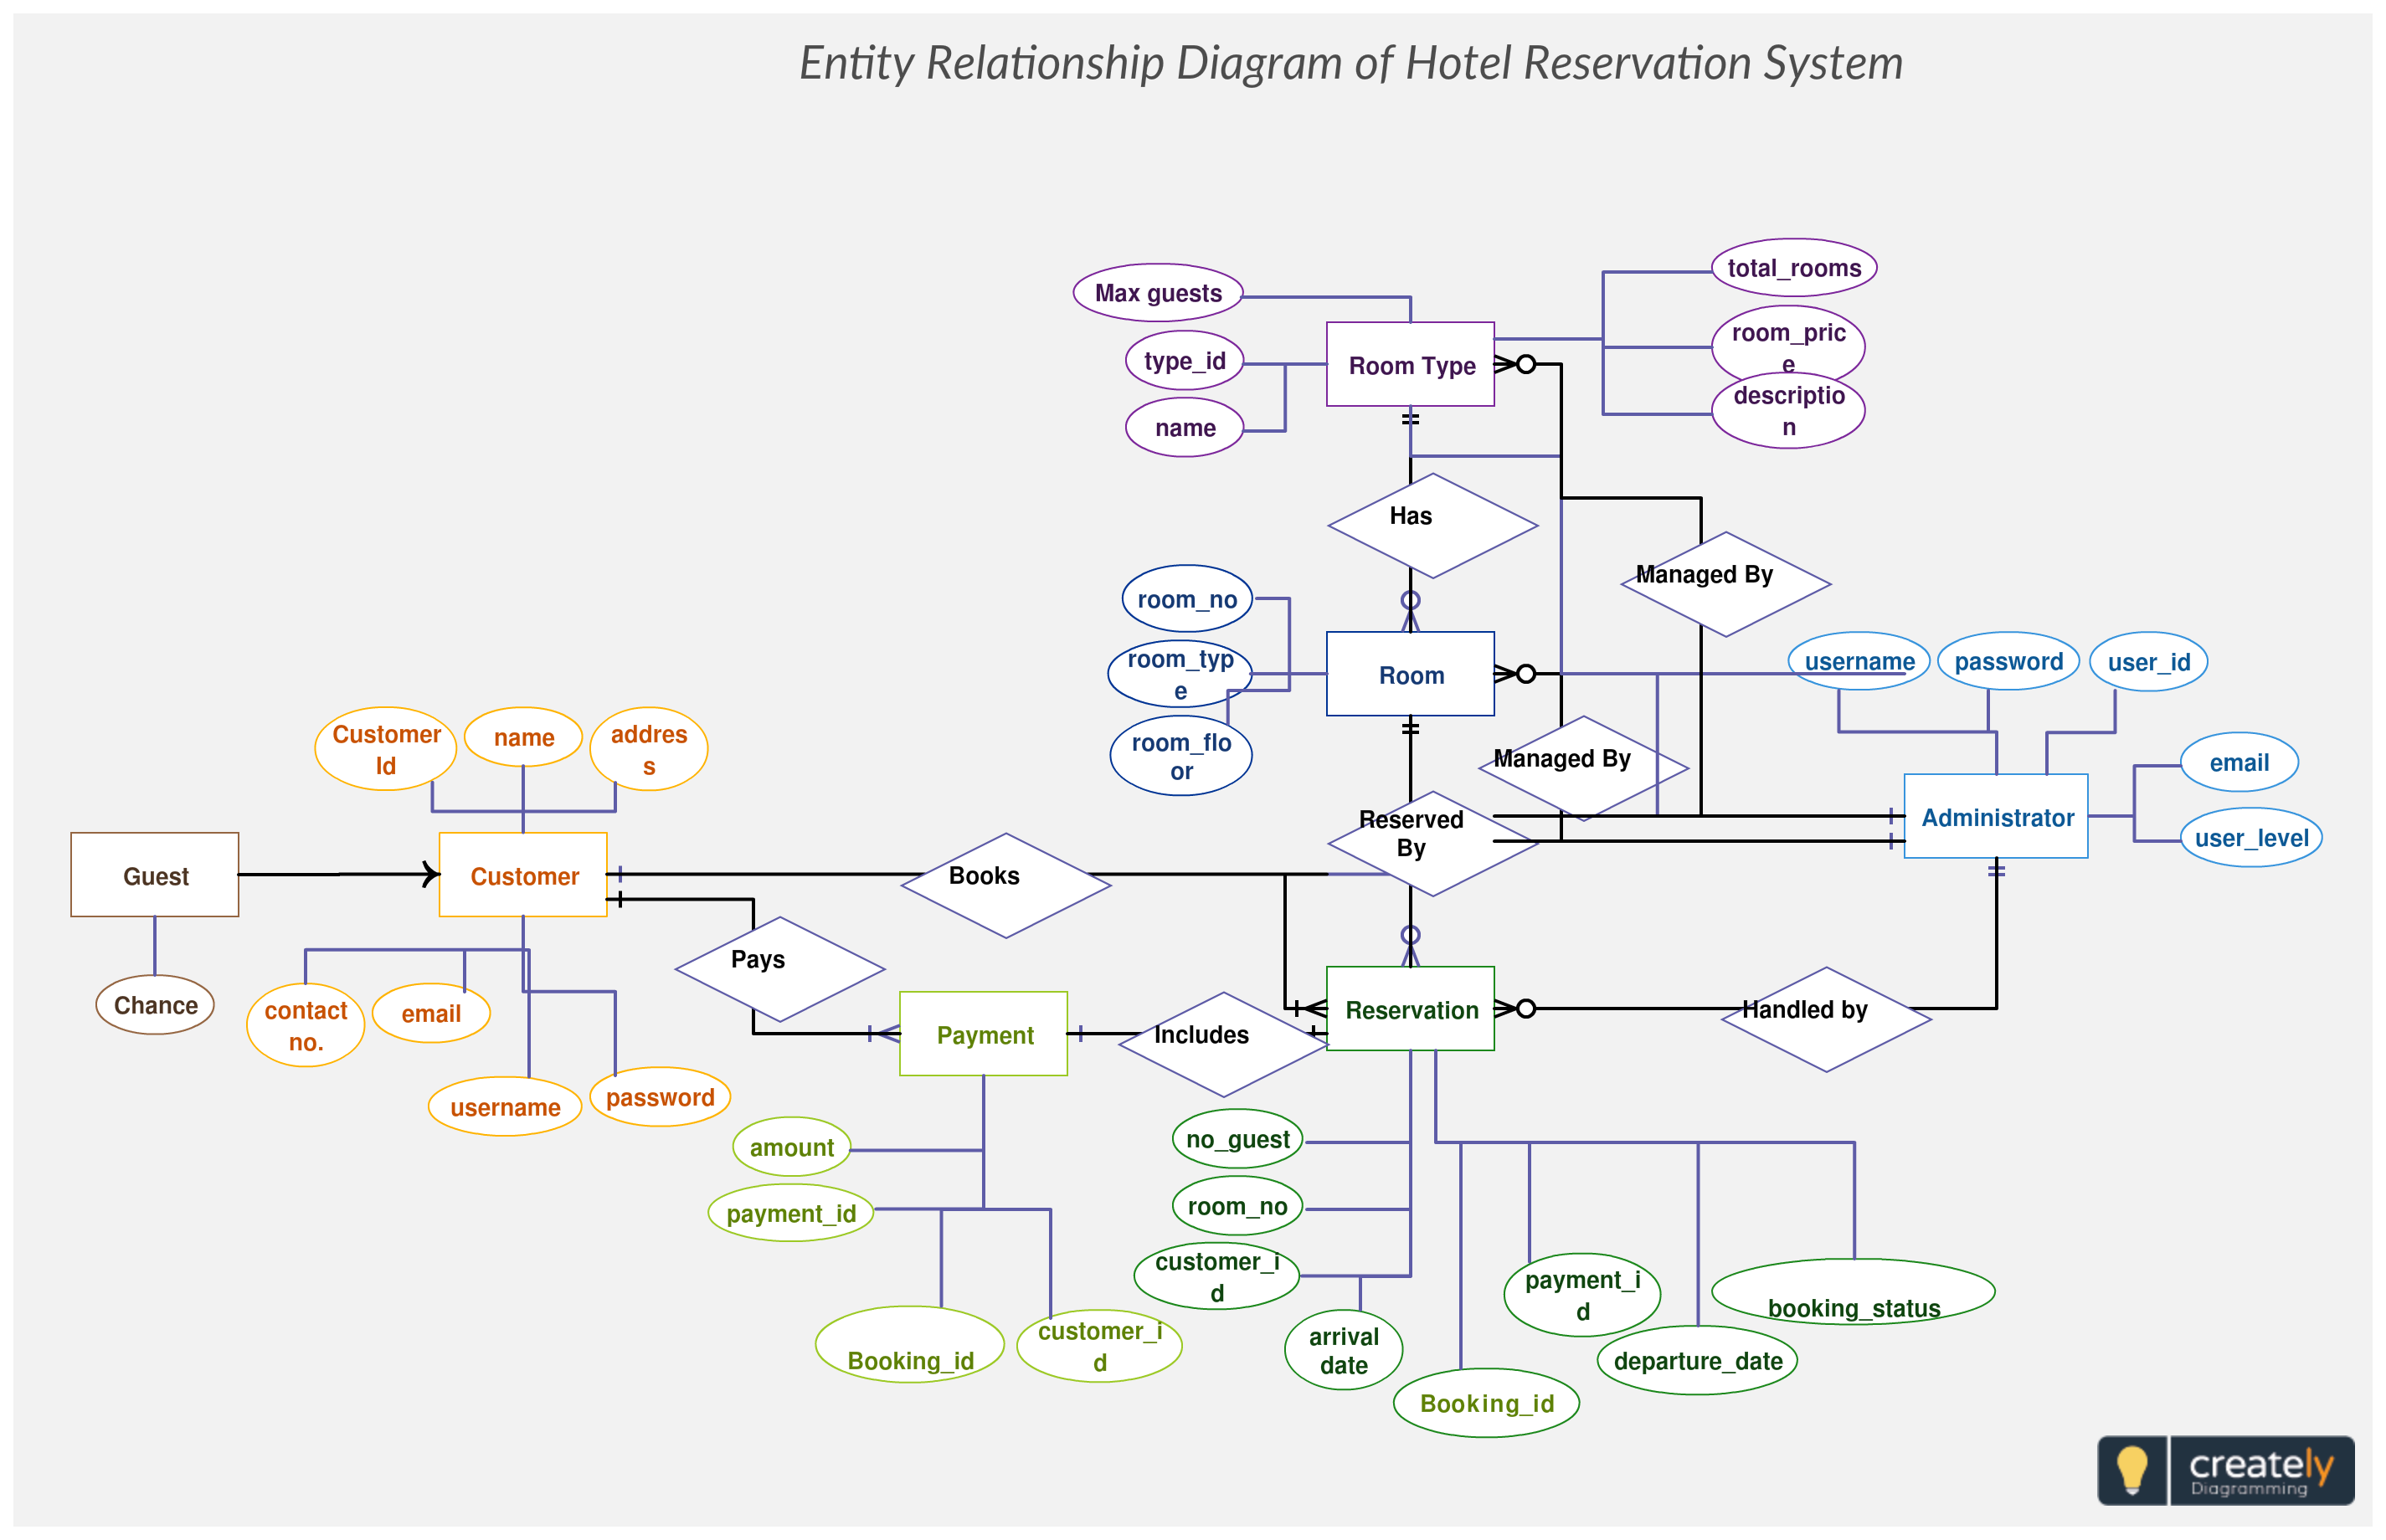 hotel reservation system er diagram maps out the data flow for a hotel,  including key concepts such as customers, rooms, bookings, payments, etc